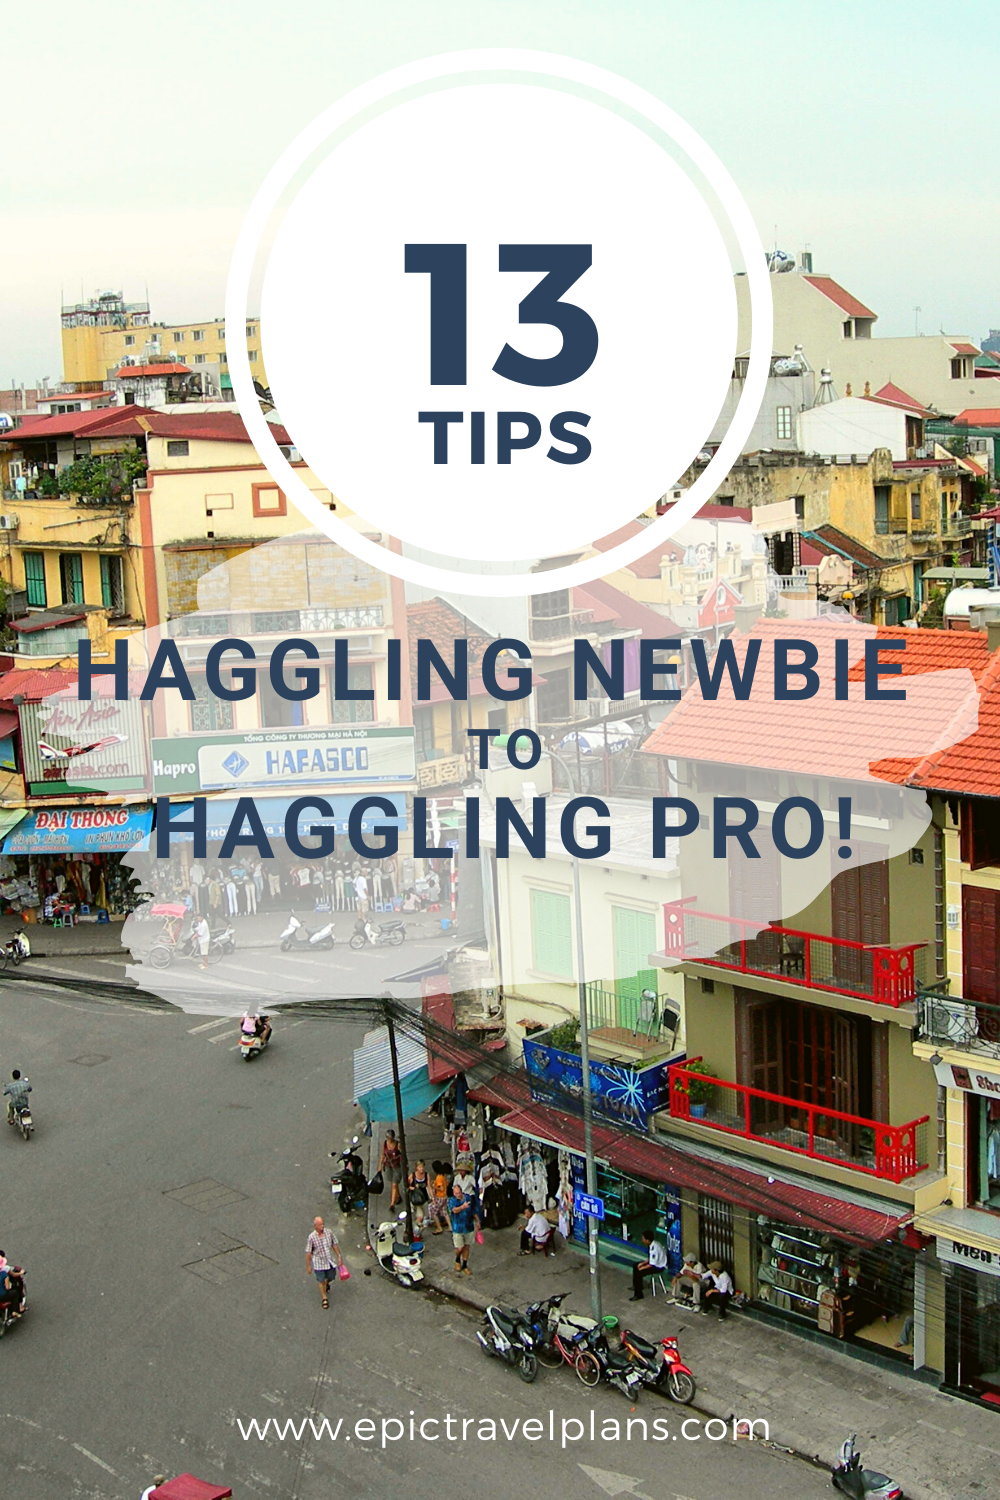 Tips to go from haggling newbie to haggling pro!